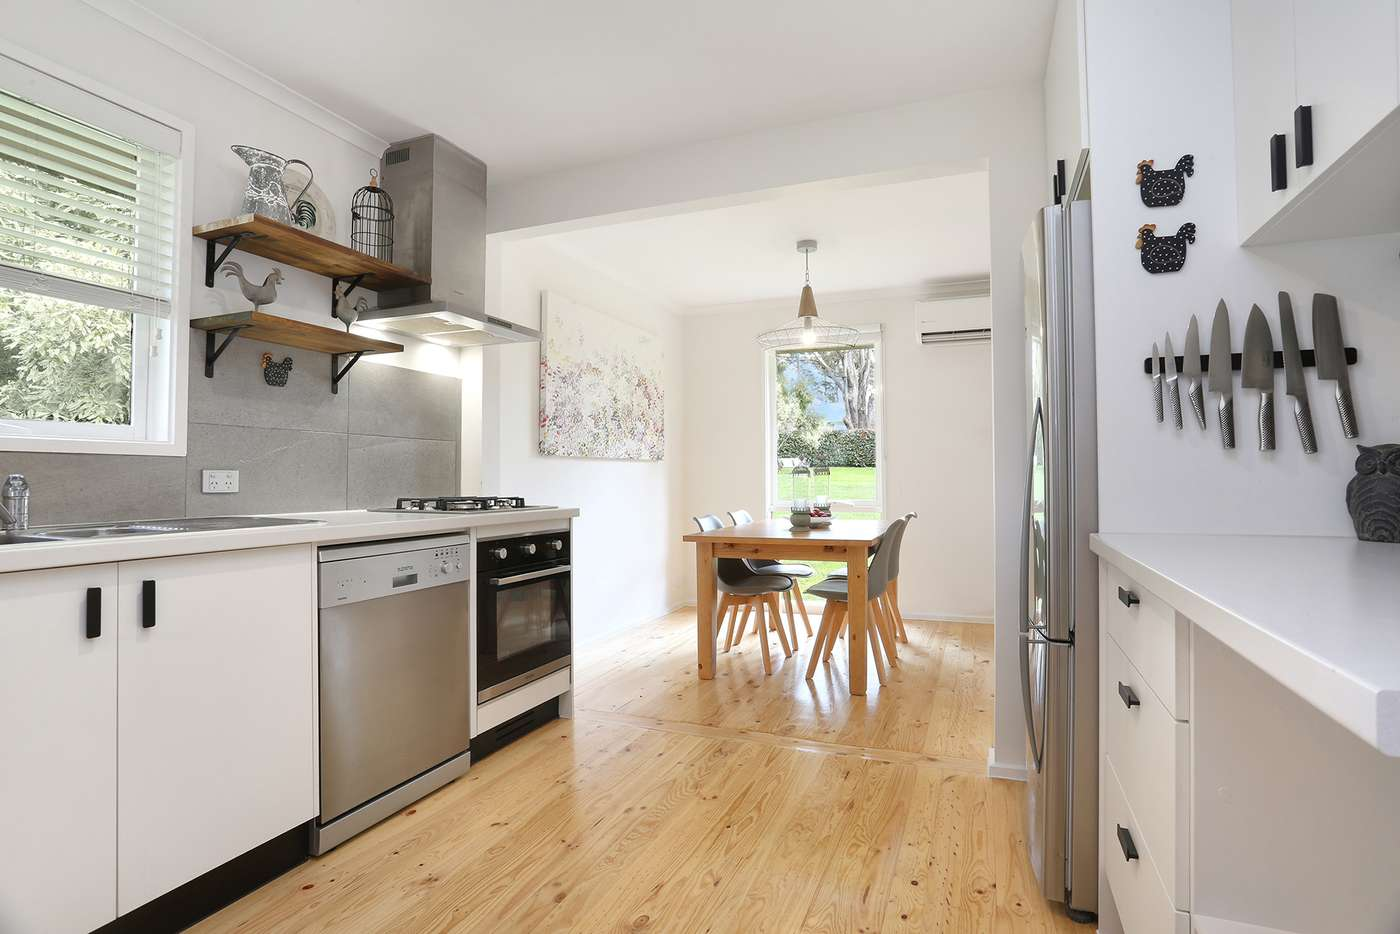 Fifth view of Homely house listing, 4 Couzens Lane, Romsey VIC 3434